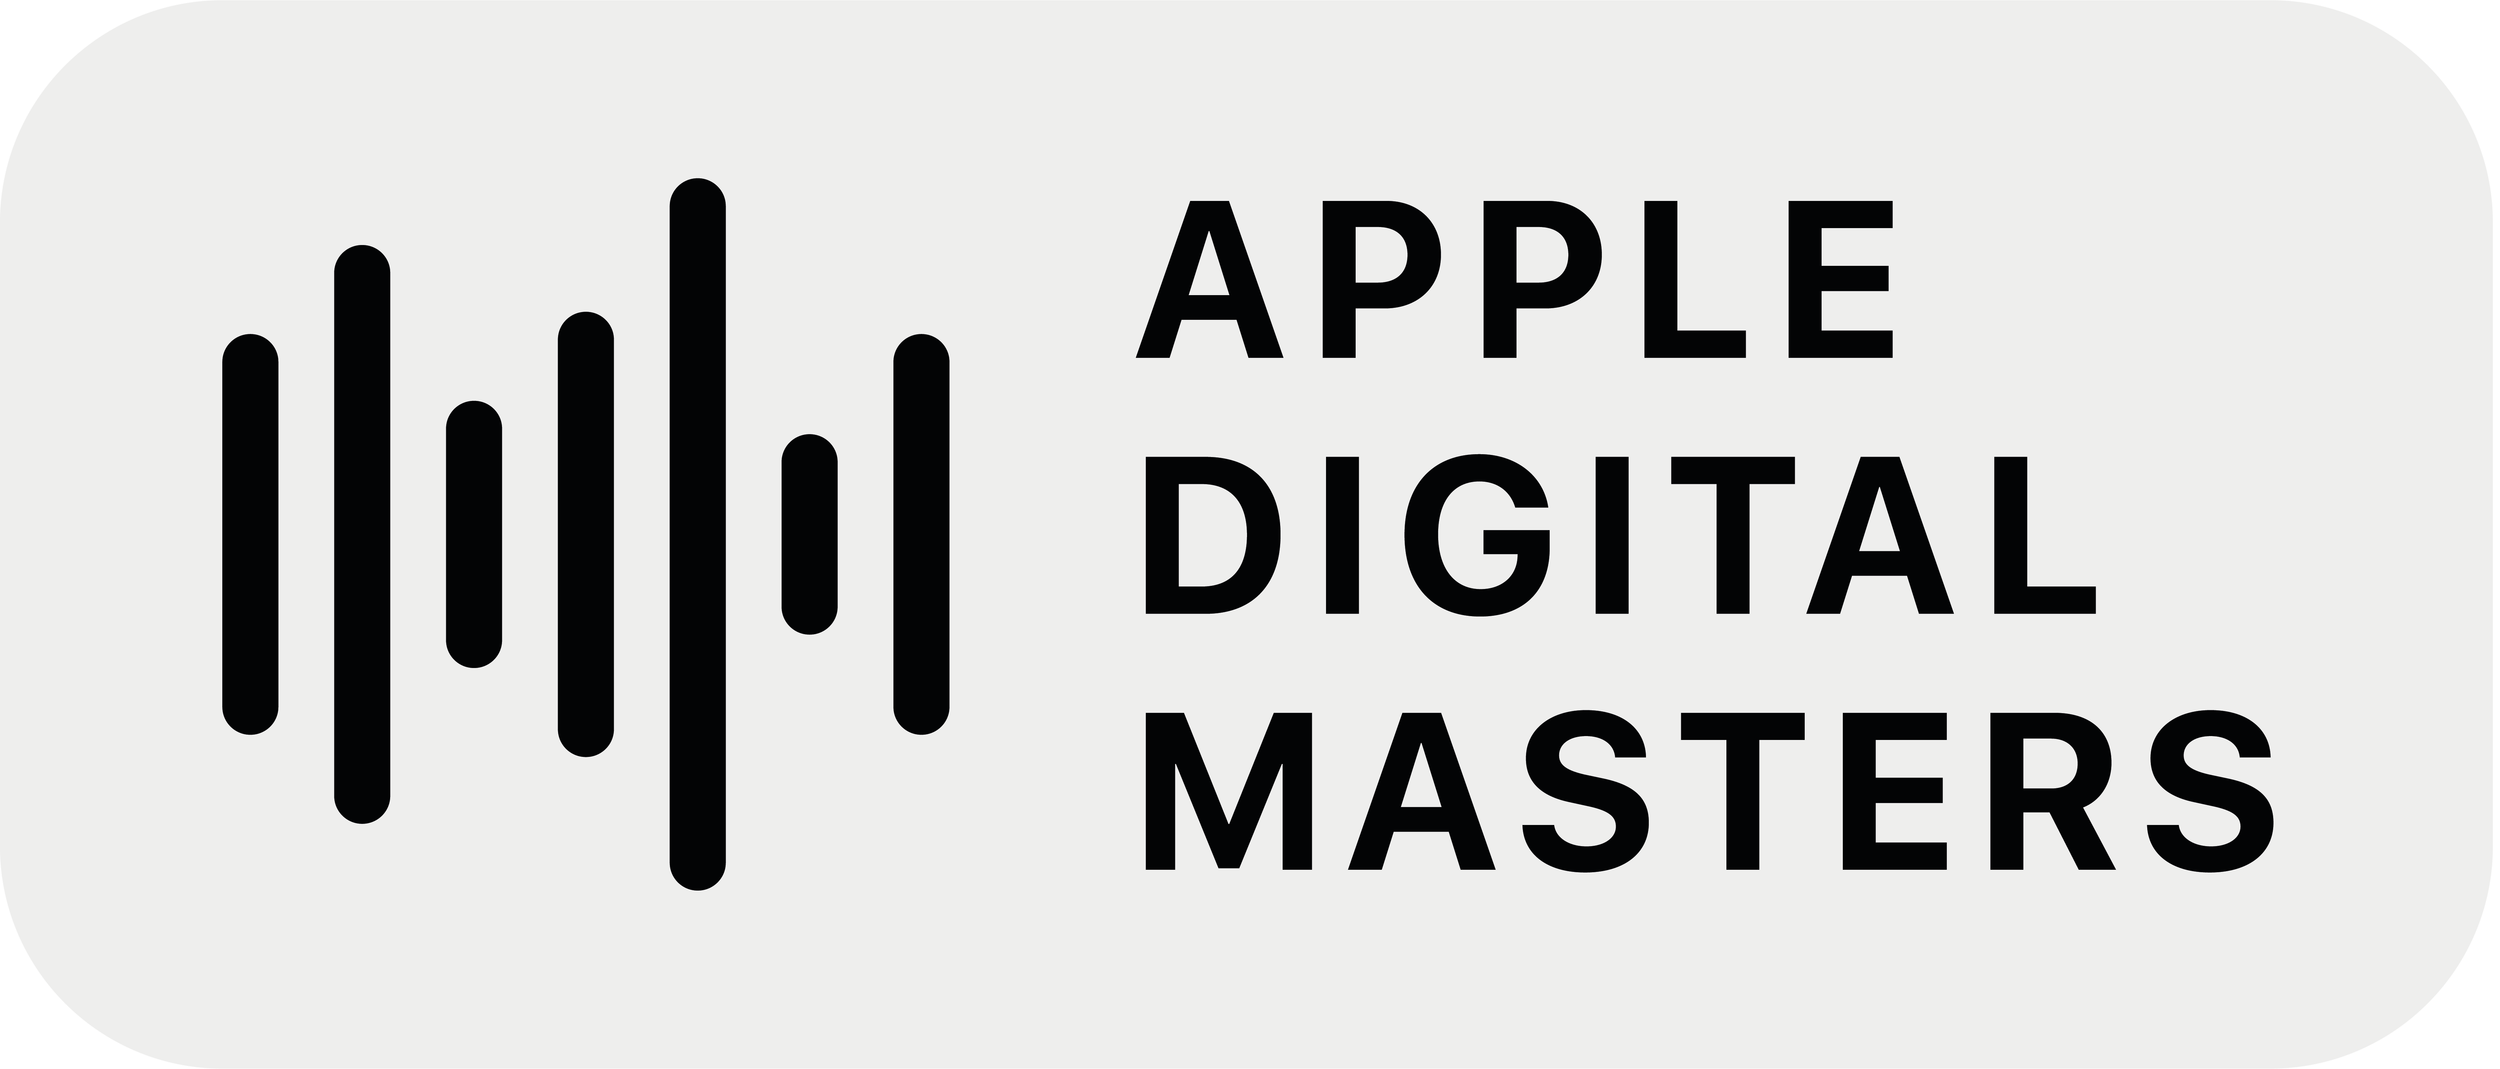 Neptune Mastering » LUFS, dBFS, RMS?! How to read the new